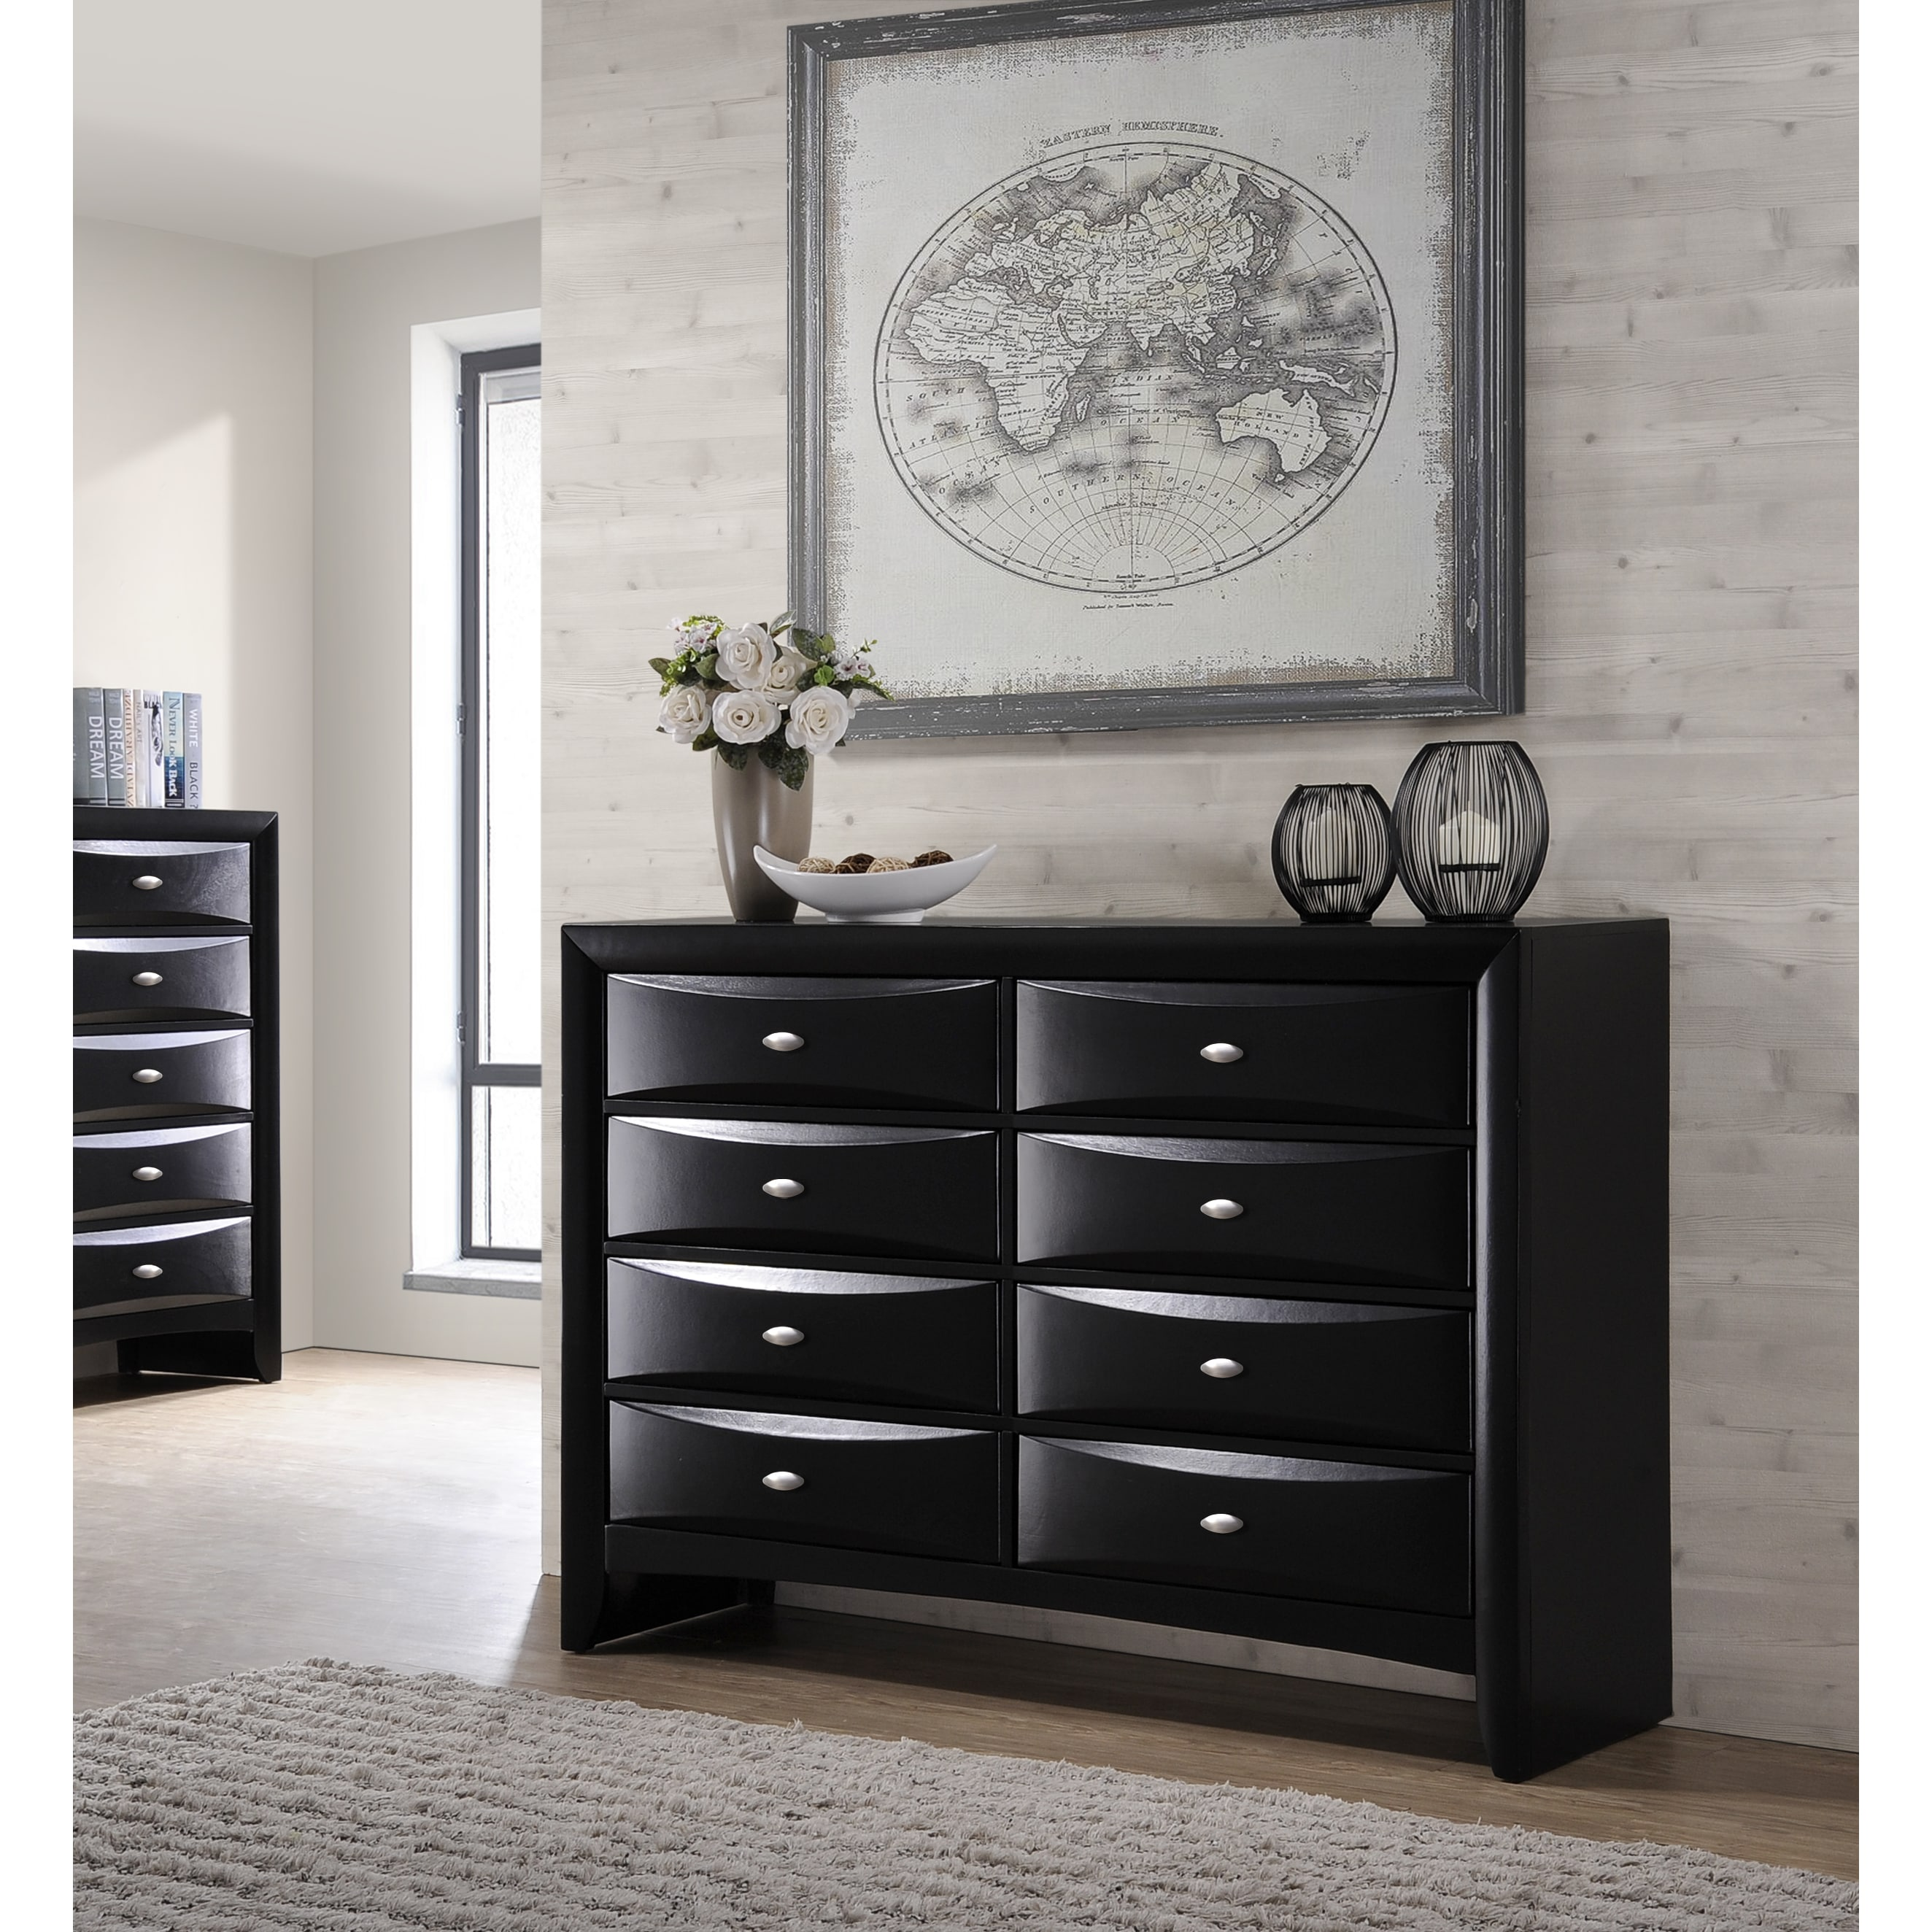 Shop Blemerey Fullyembled Black Finish Wood Dresser And Mirror Free Shipping Today Overstock Com 14807626